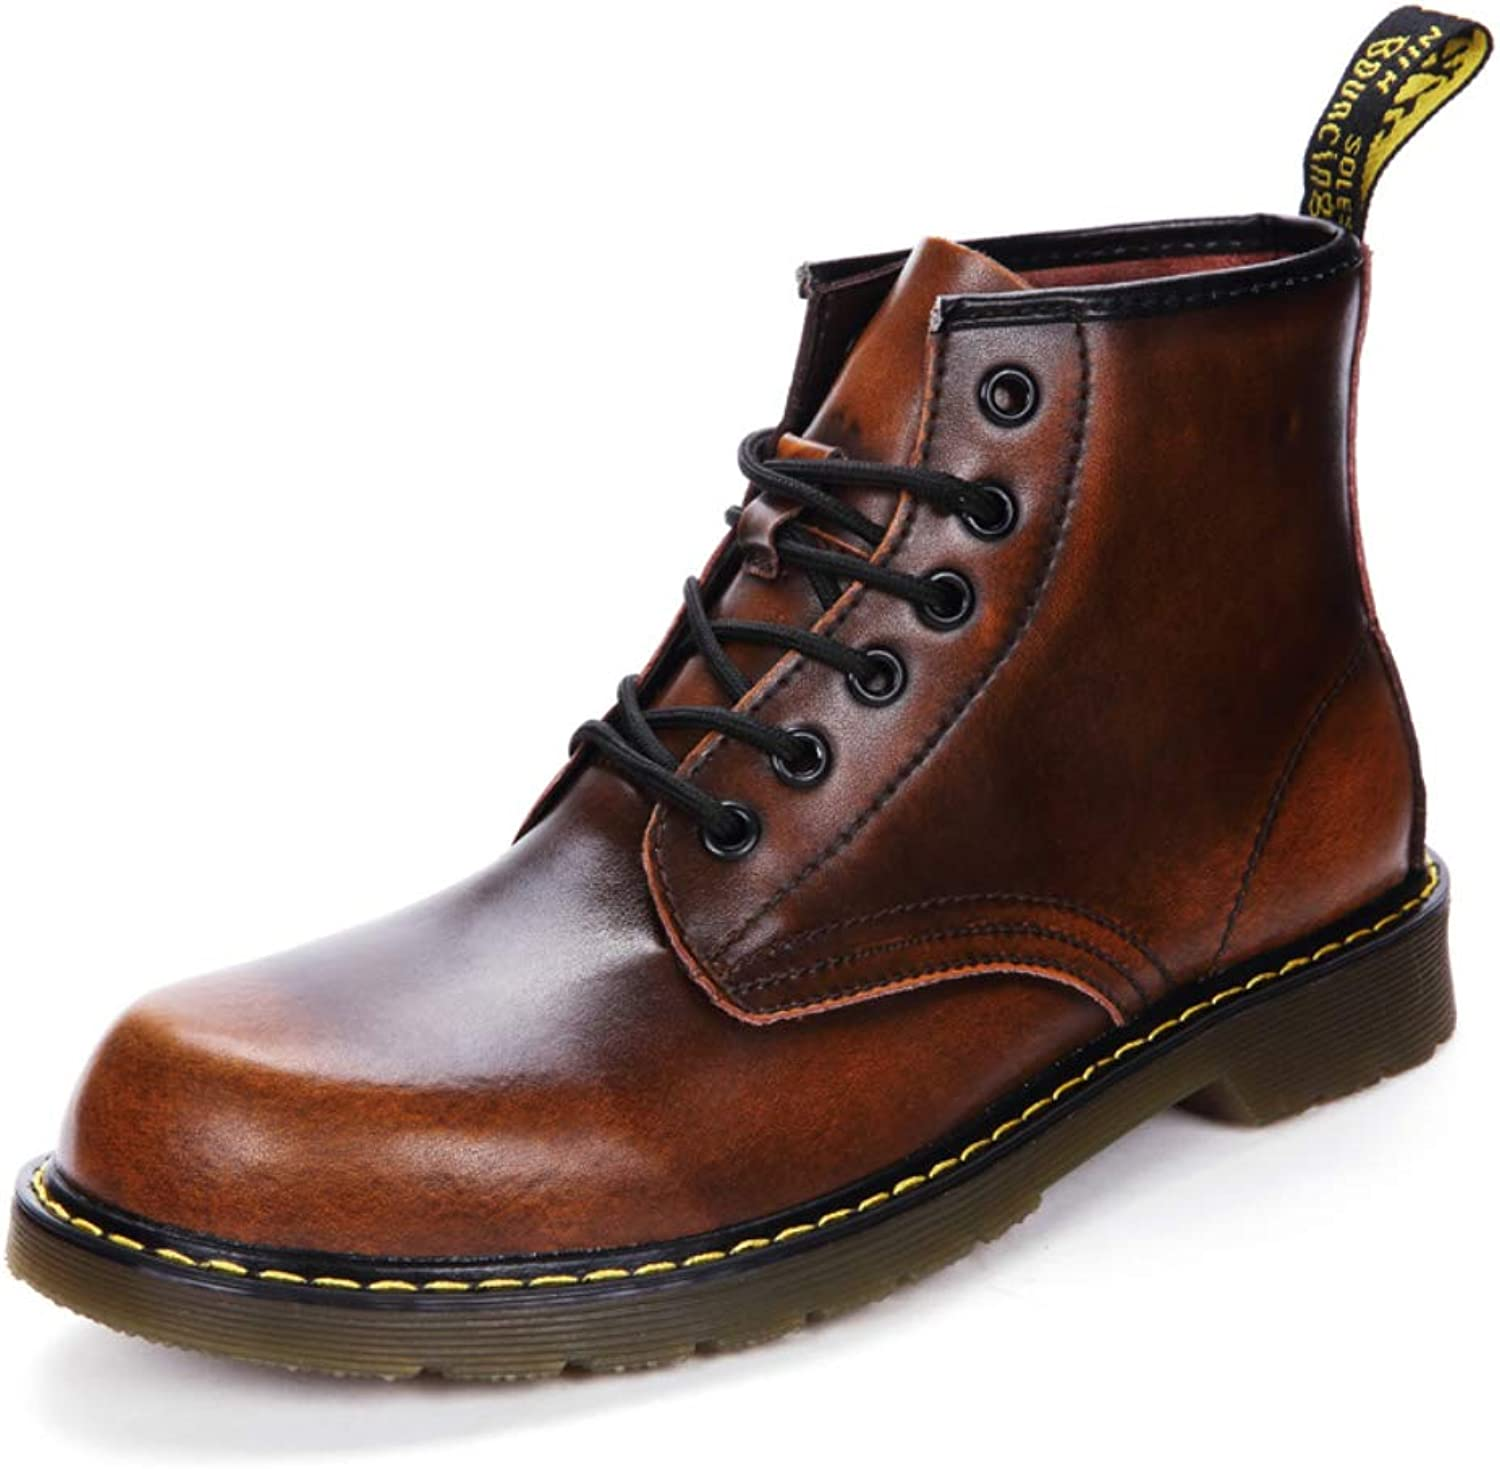 shoes House Men's Oxford Booties Retro Slip Work Boots